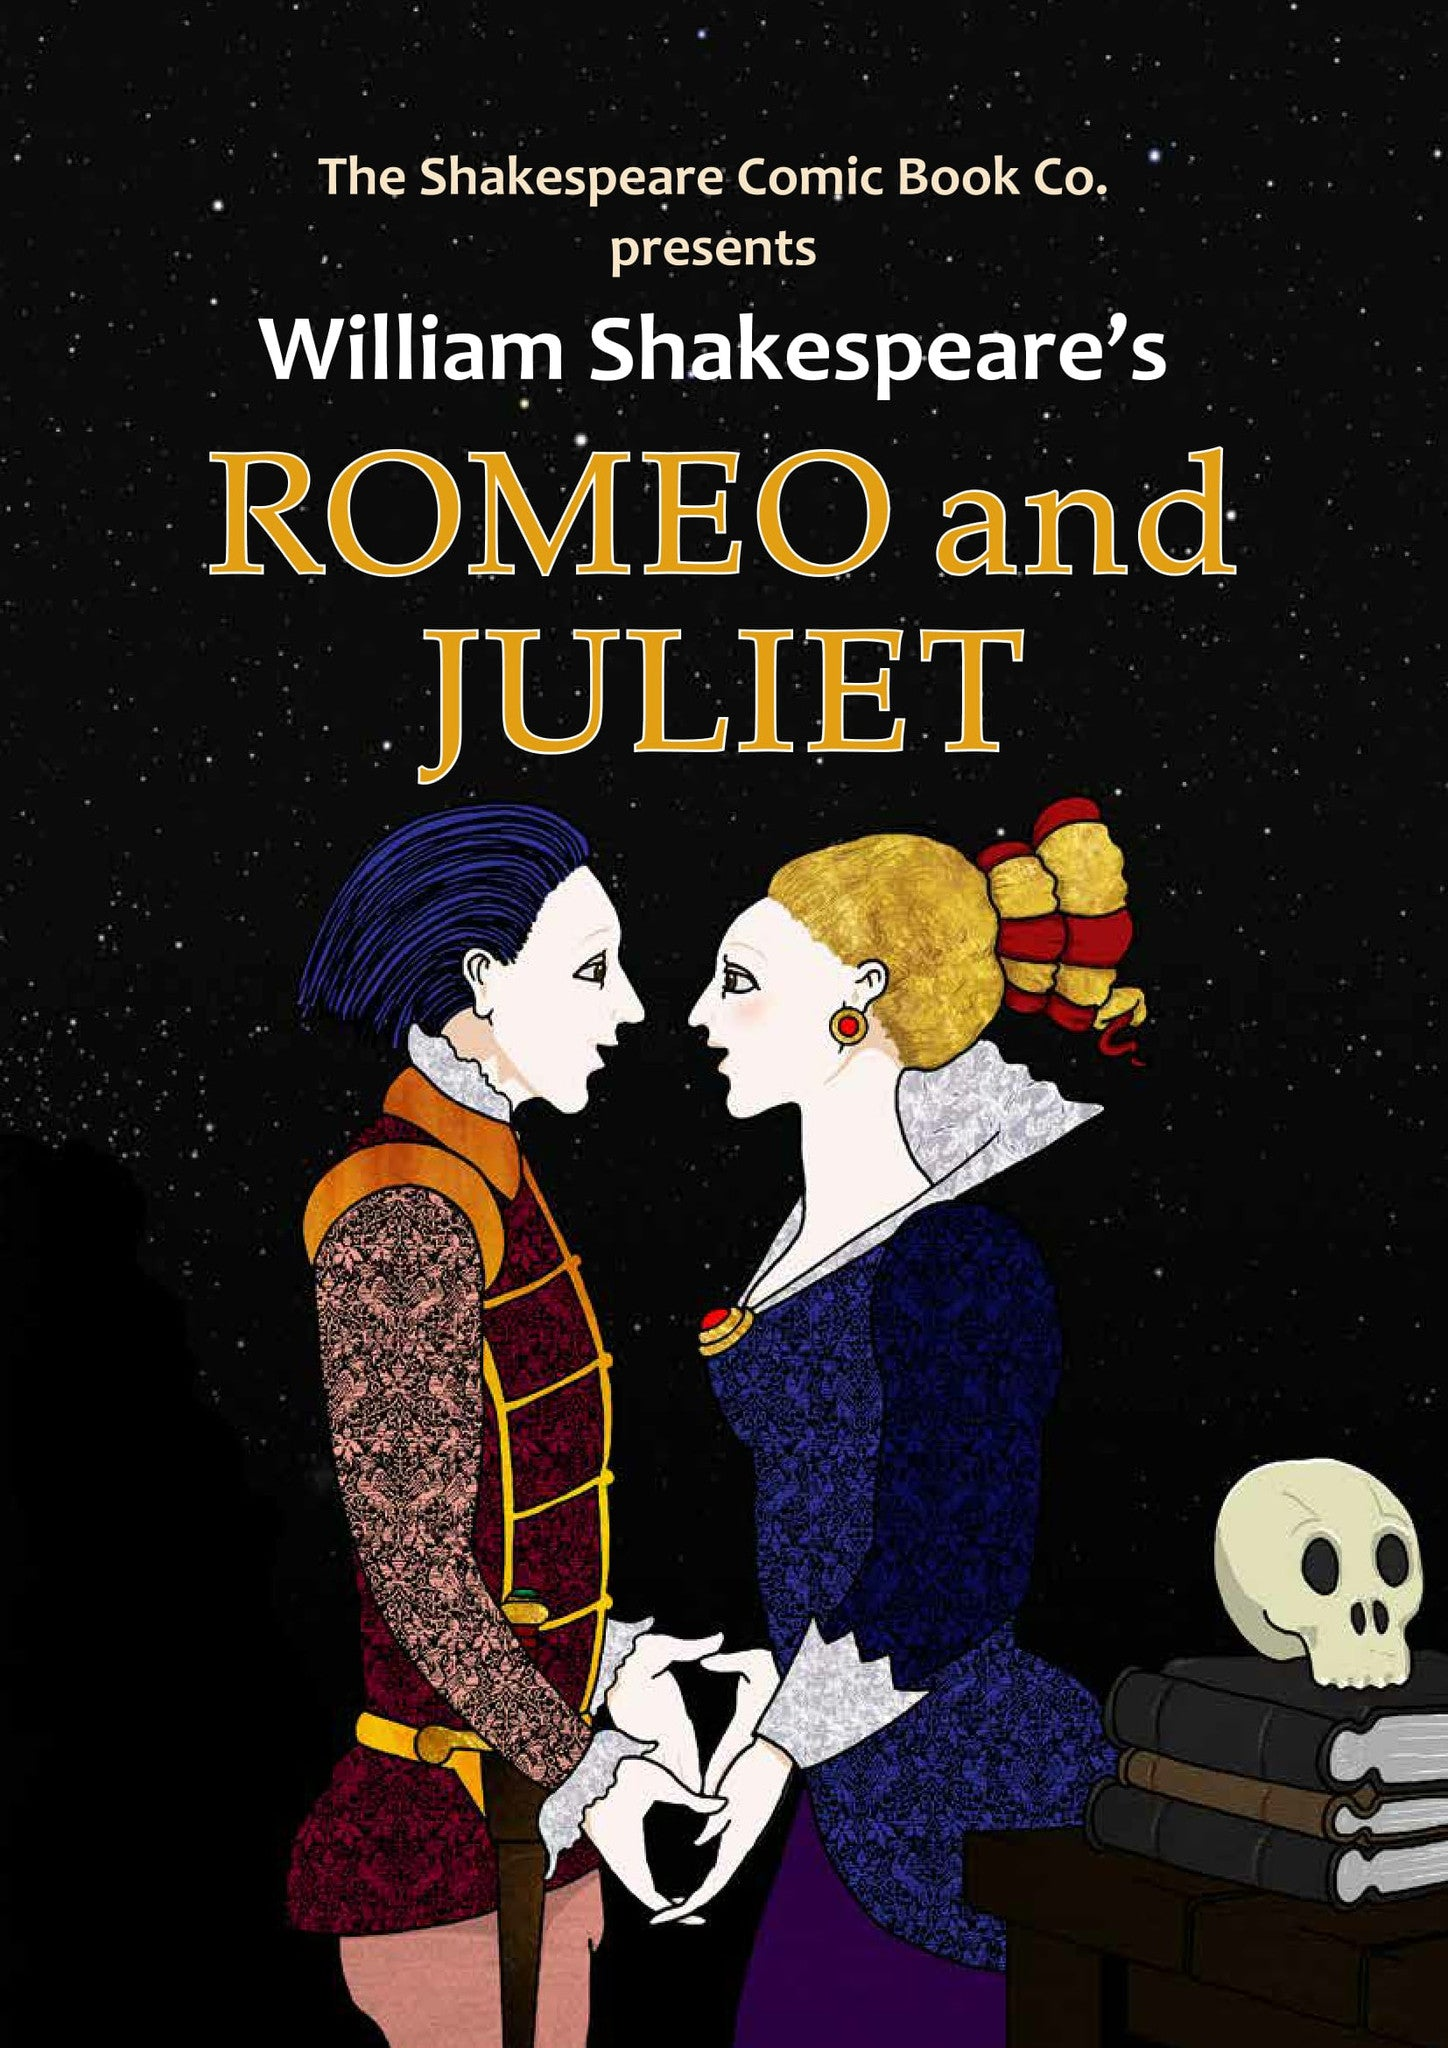 romeo and juliet movie and book Introduction one of shakespeare's earlier plays, romeo and juliet is one of two  tragedies written between 1590-1595 the play is based on a.